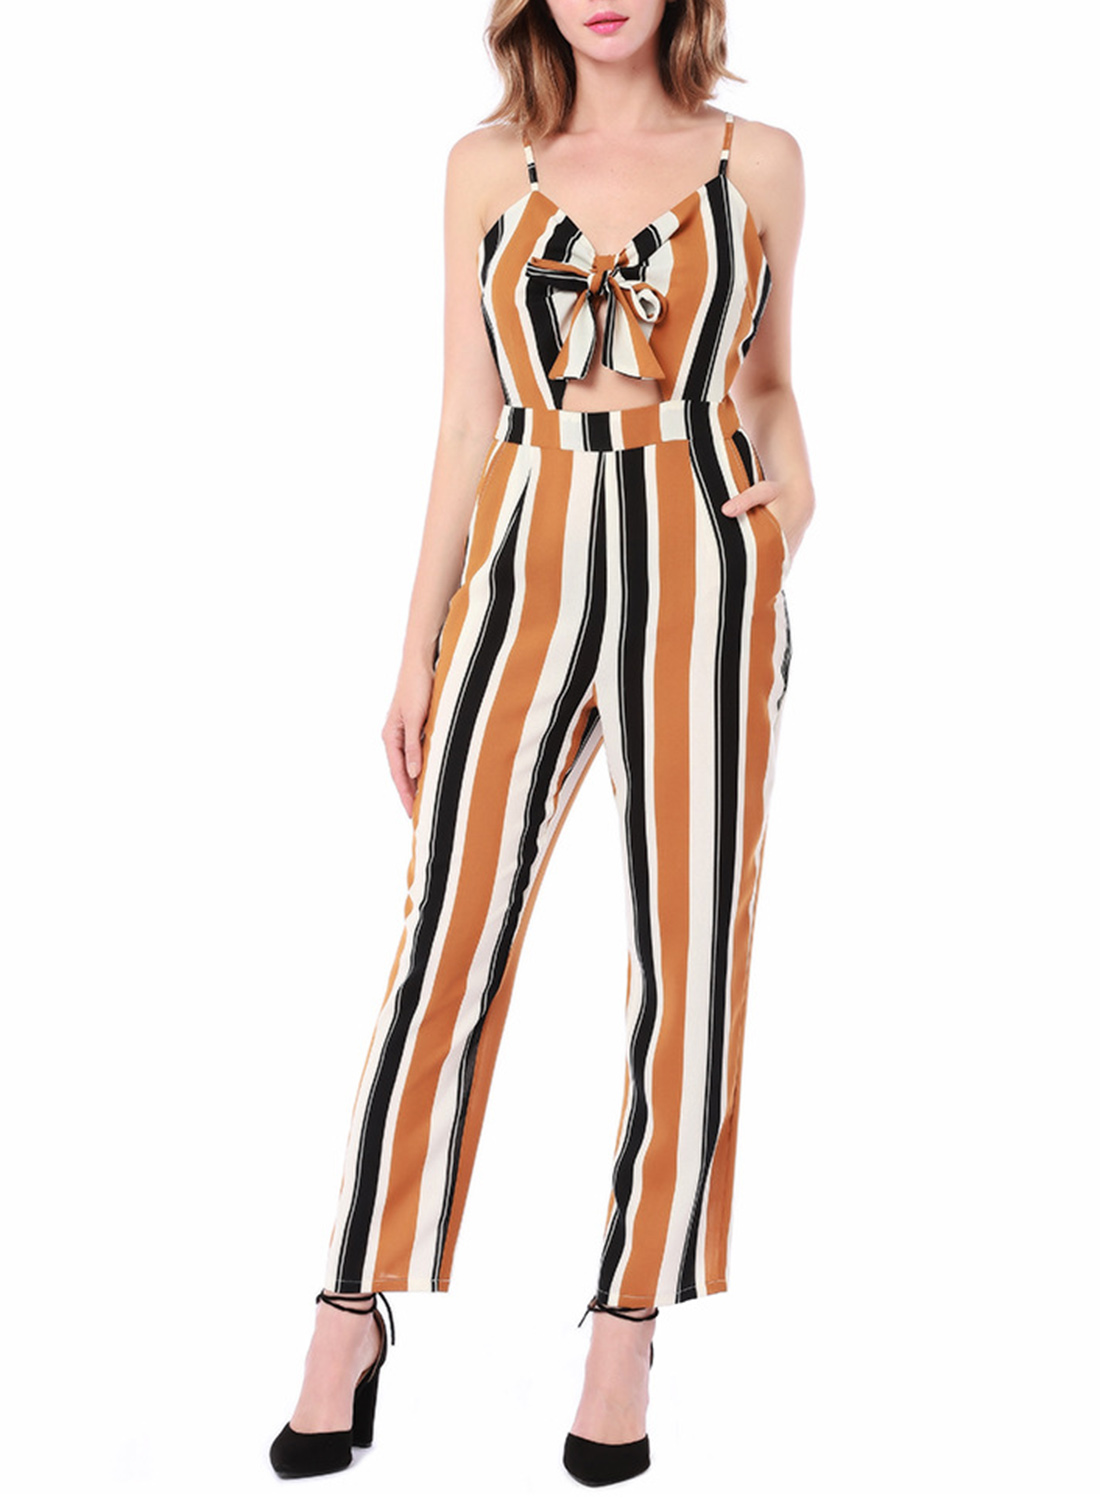 4529d797ad6 Yellow Fashion Slim Striped Floral Printed Spaghetti Strap Jumpsuit With  Bow STYLESIMO.com. Loading zoom